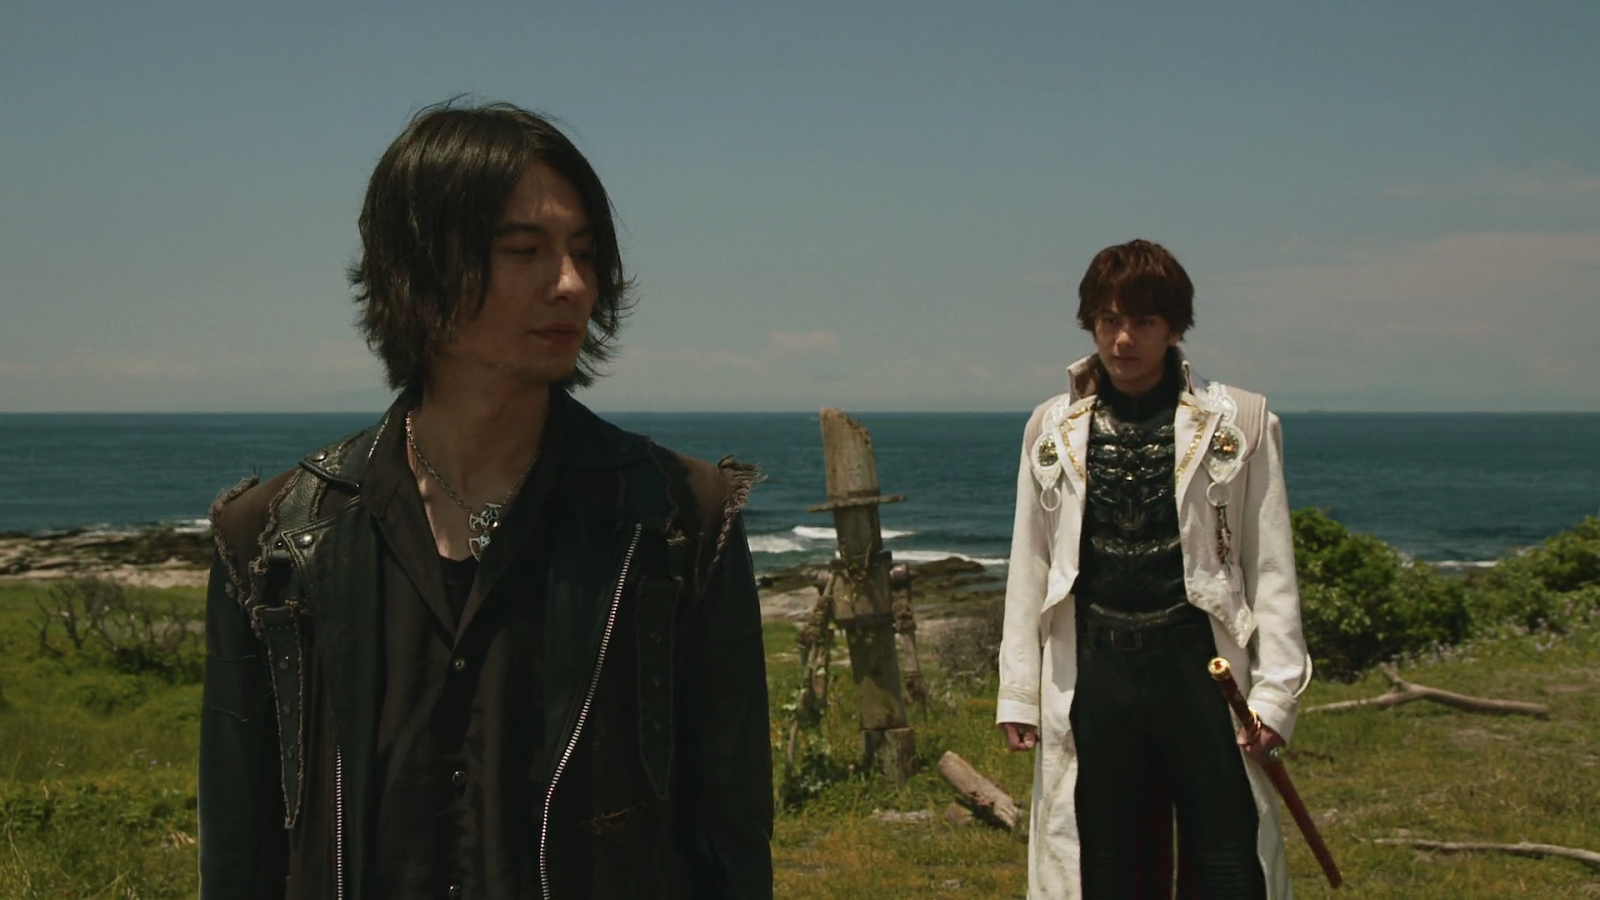 Kouga and Rei prepare for a friendly battle